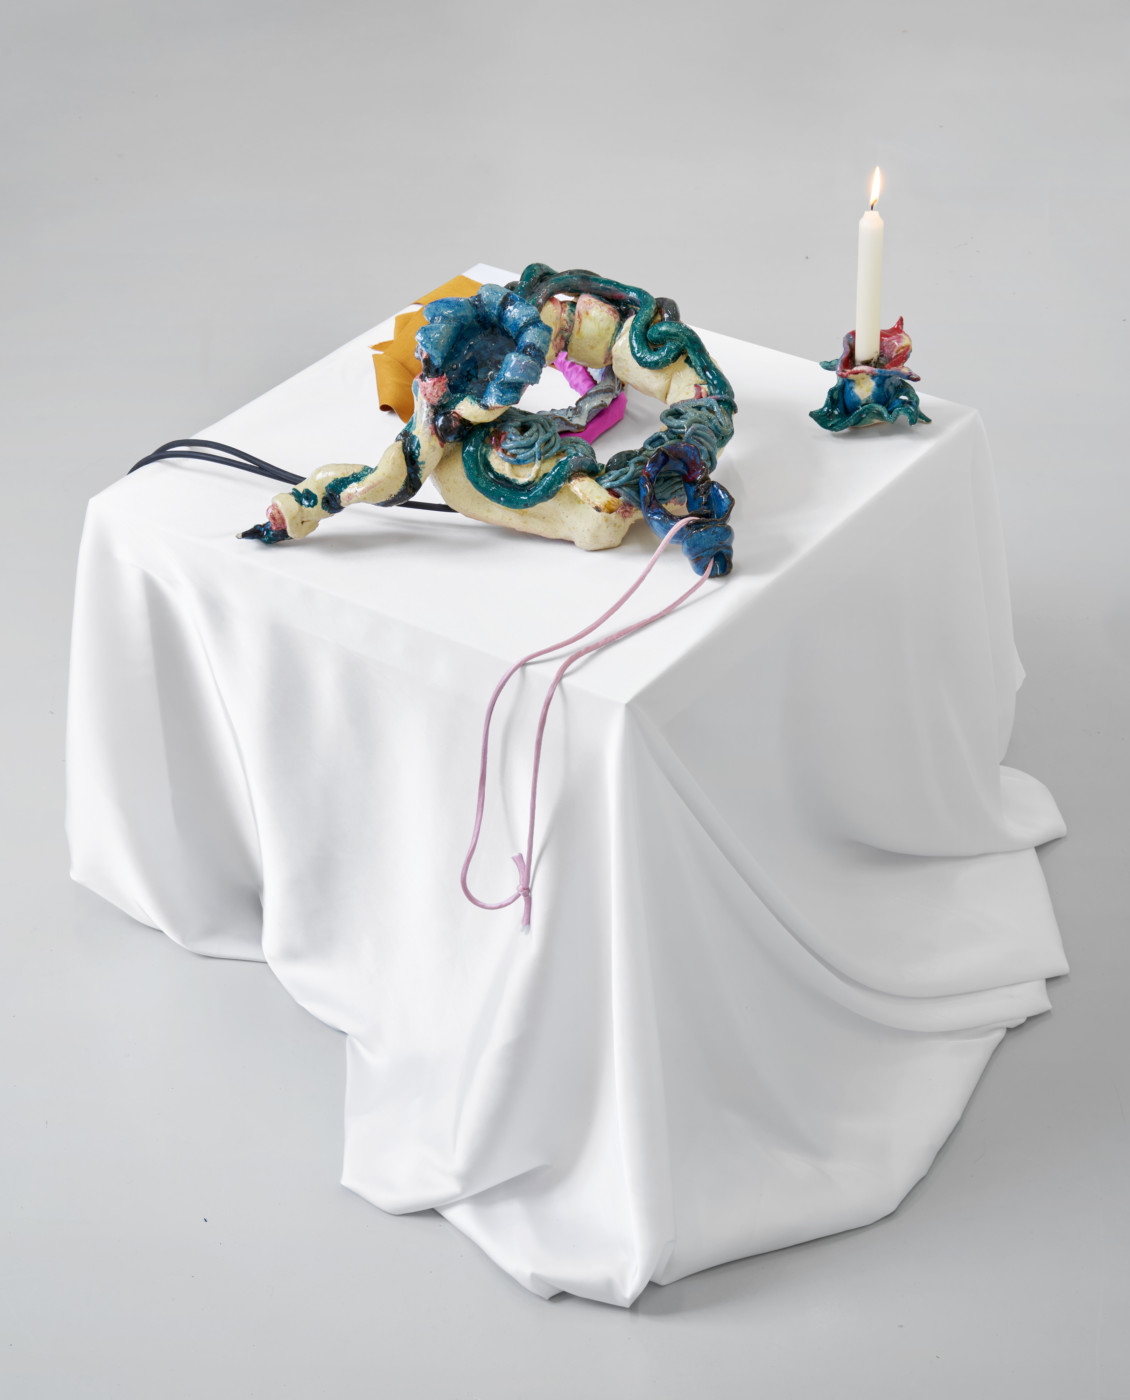 BORDERLINKING Nora Berman  1st Gen Props for Isis Unveiled Ouverture</I>, 2020 Glazed ceramics, contact microphones, wax, silk, lavender Variable dimensions - High Art Gallery Paris